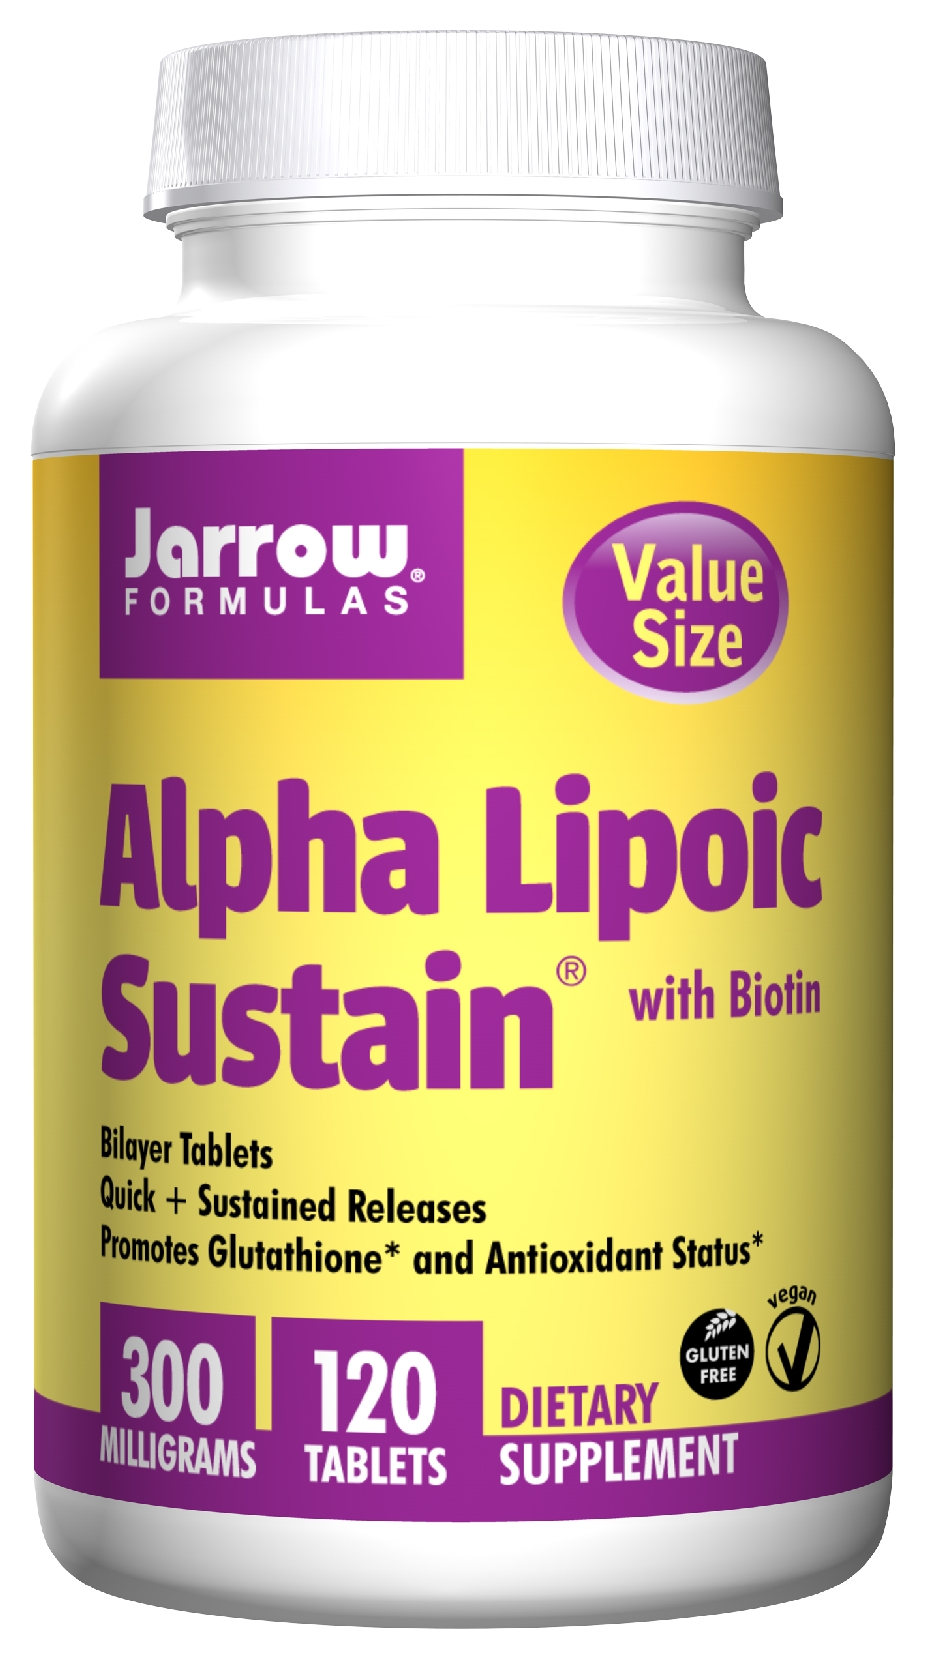 Alpha Lipoic Sustain 300 with Biotin 300 mg 120 Sustain tabs by Jarrow Formulas